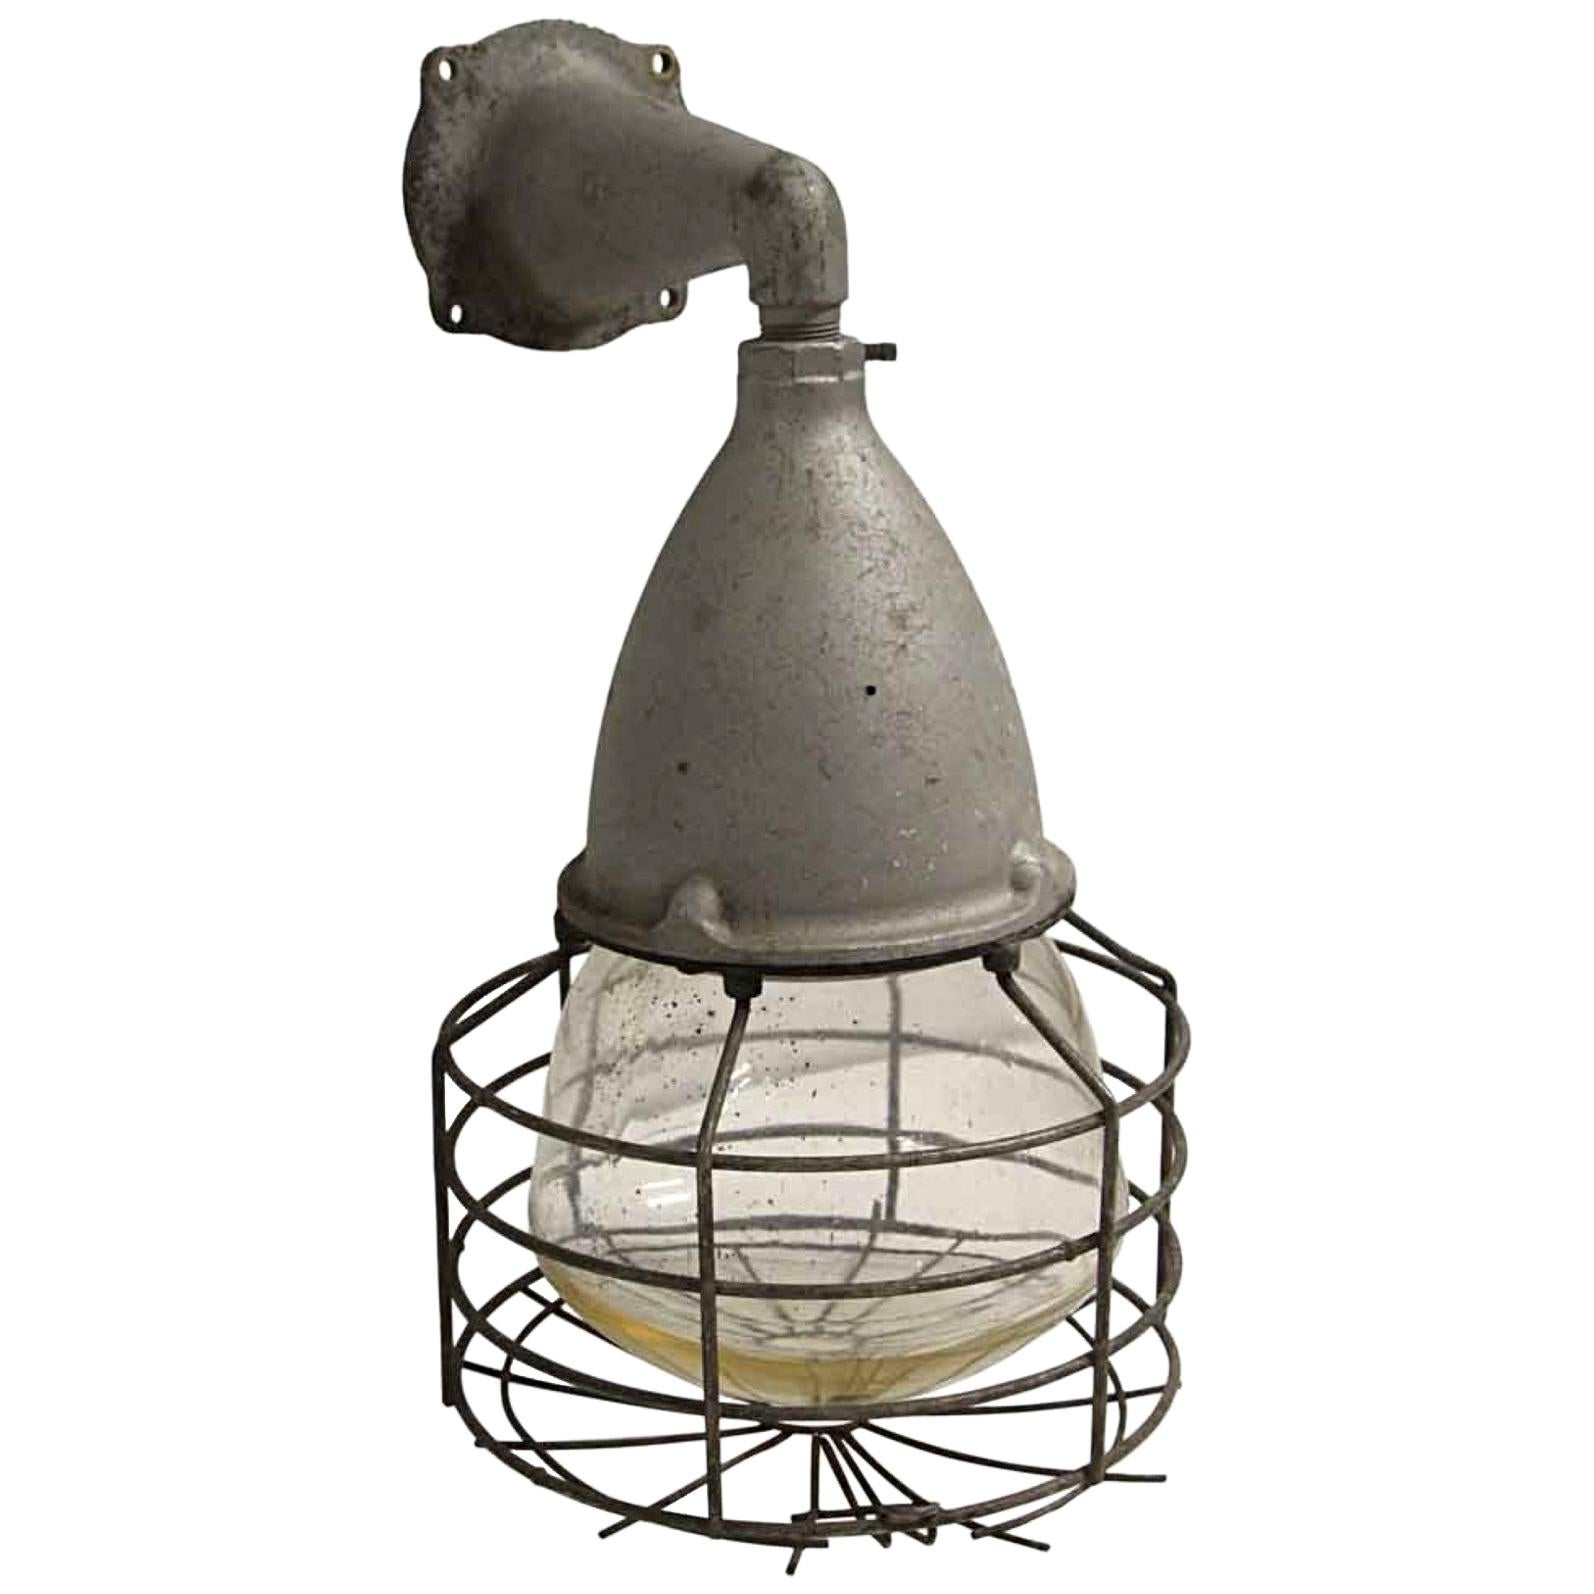 1940s Cross-Hinds Industrial Nautical Cage Light Sconce with Original Glass